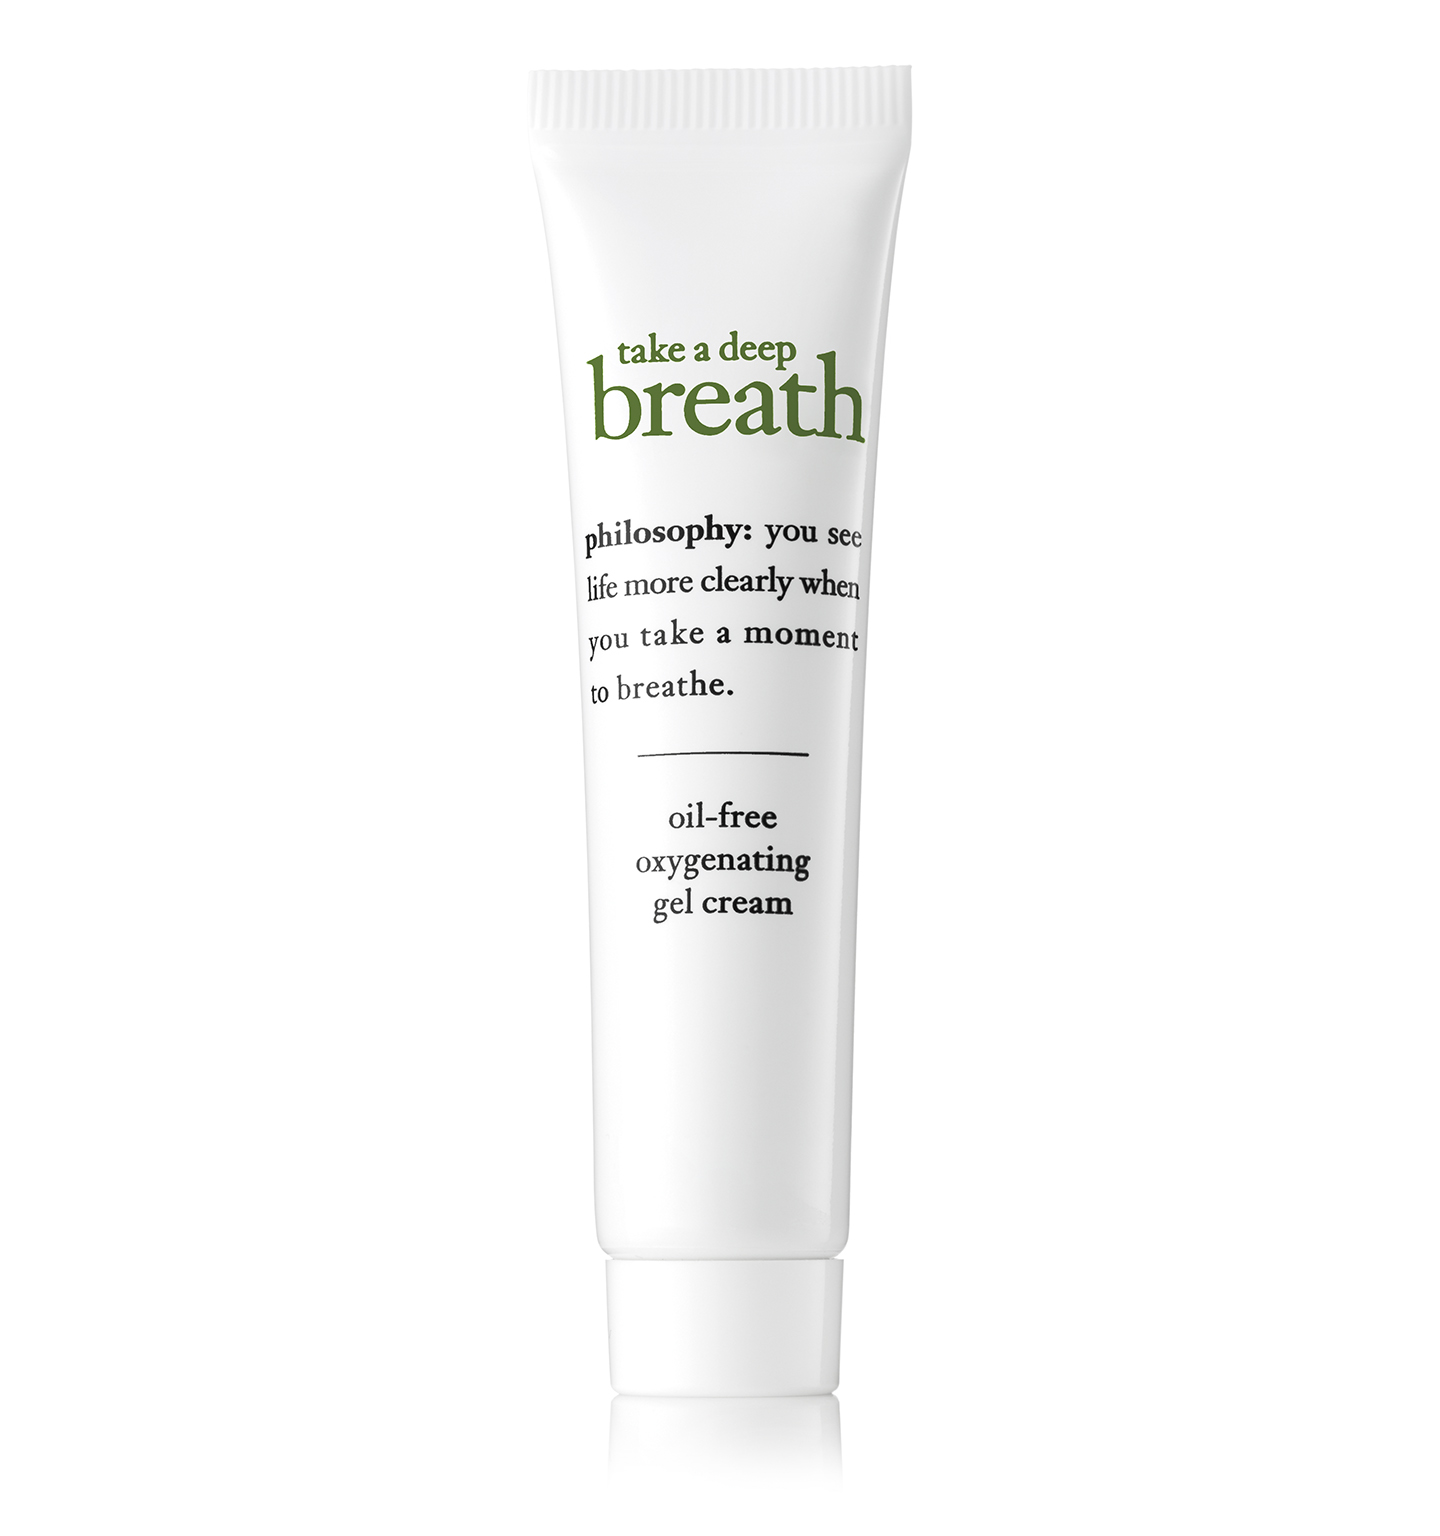 philosophy, take a deep breath 0.5oz. oil free cream